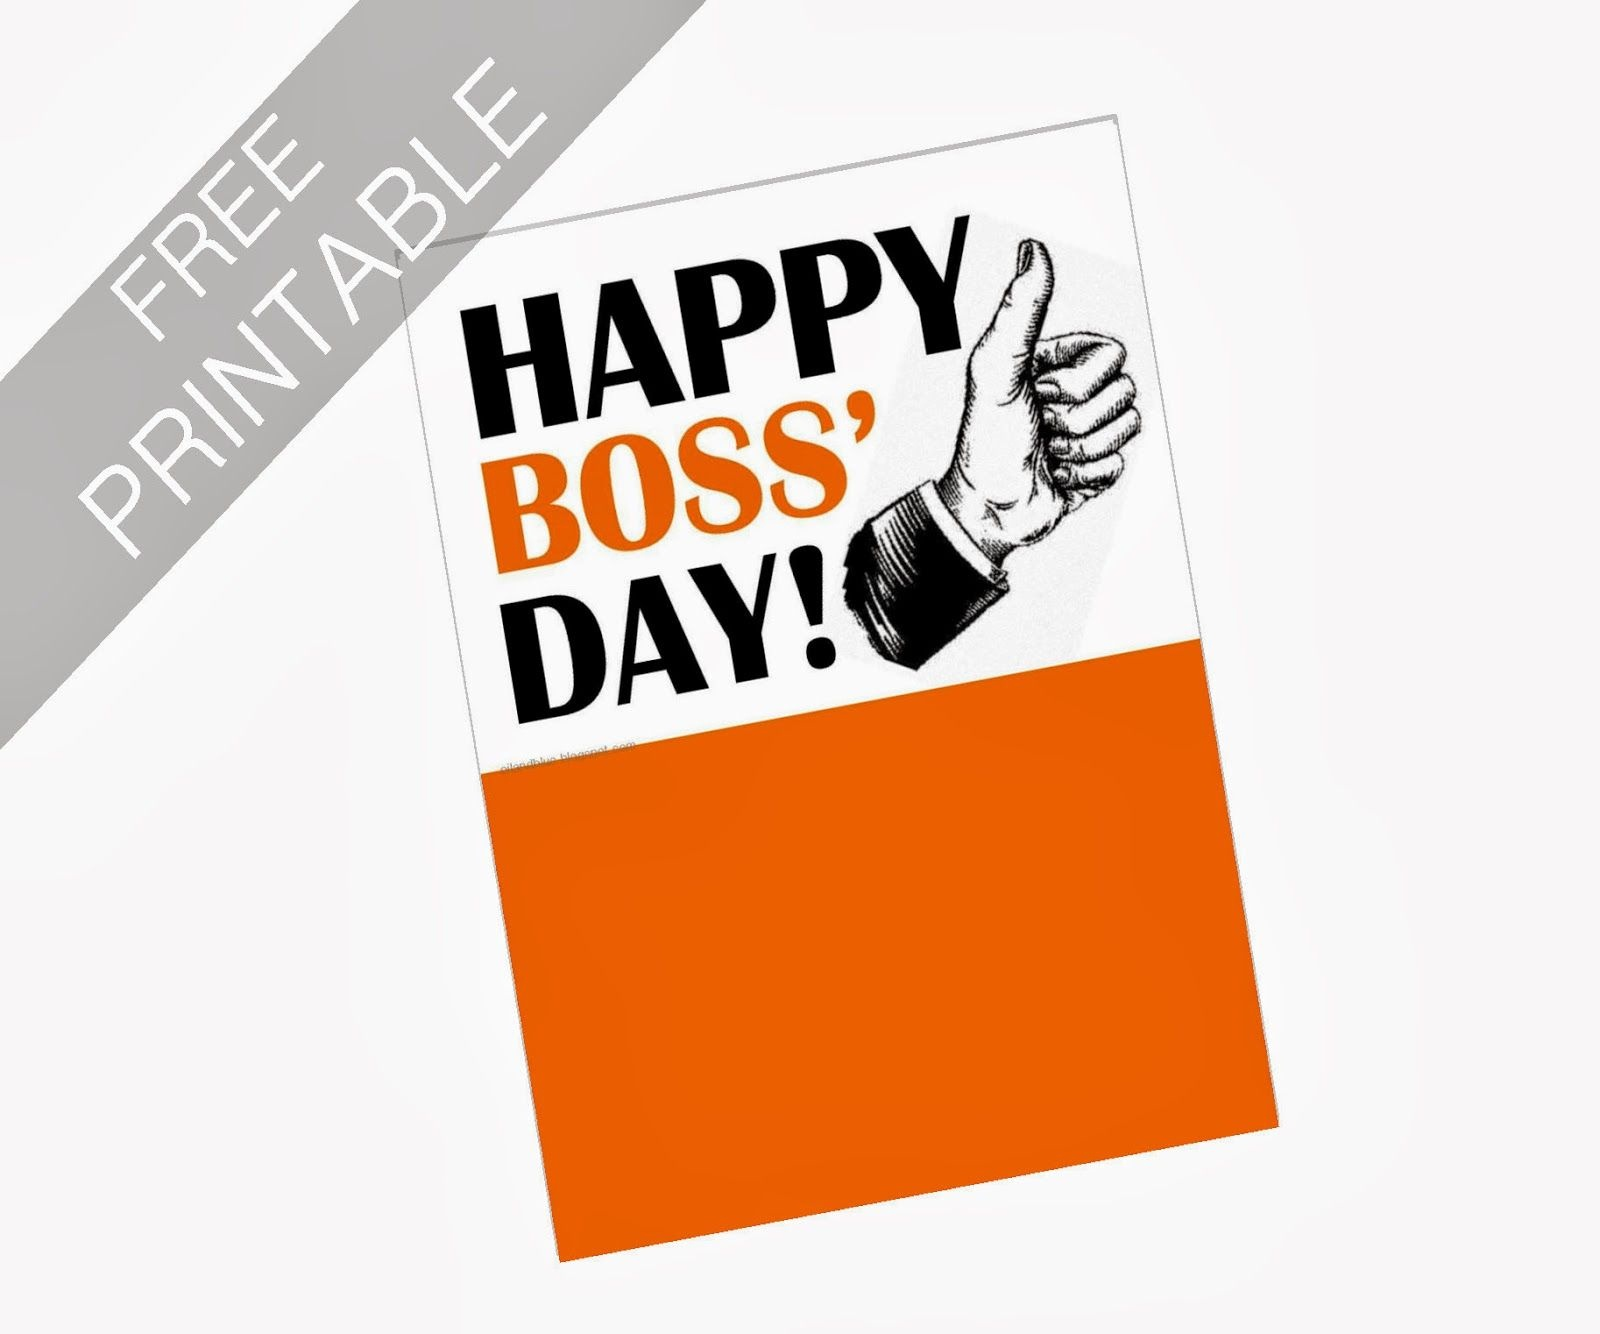 Oil And Blue: Free Printables - Happy Boss' Day Card | Party Ideas - Free Printable Boss's Day Cards